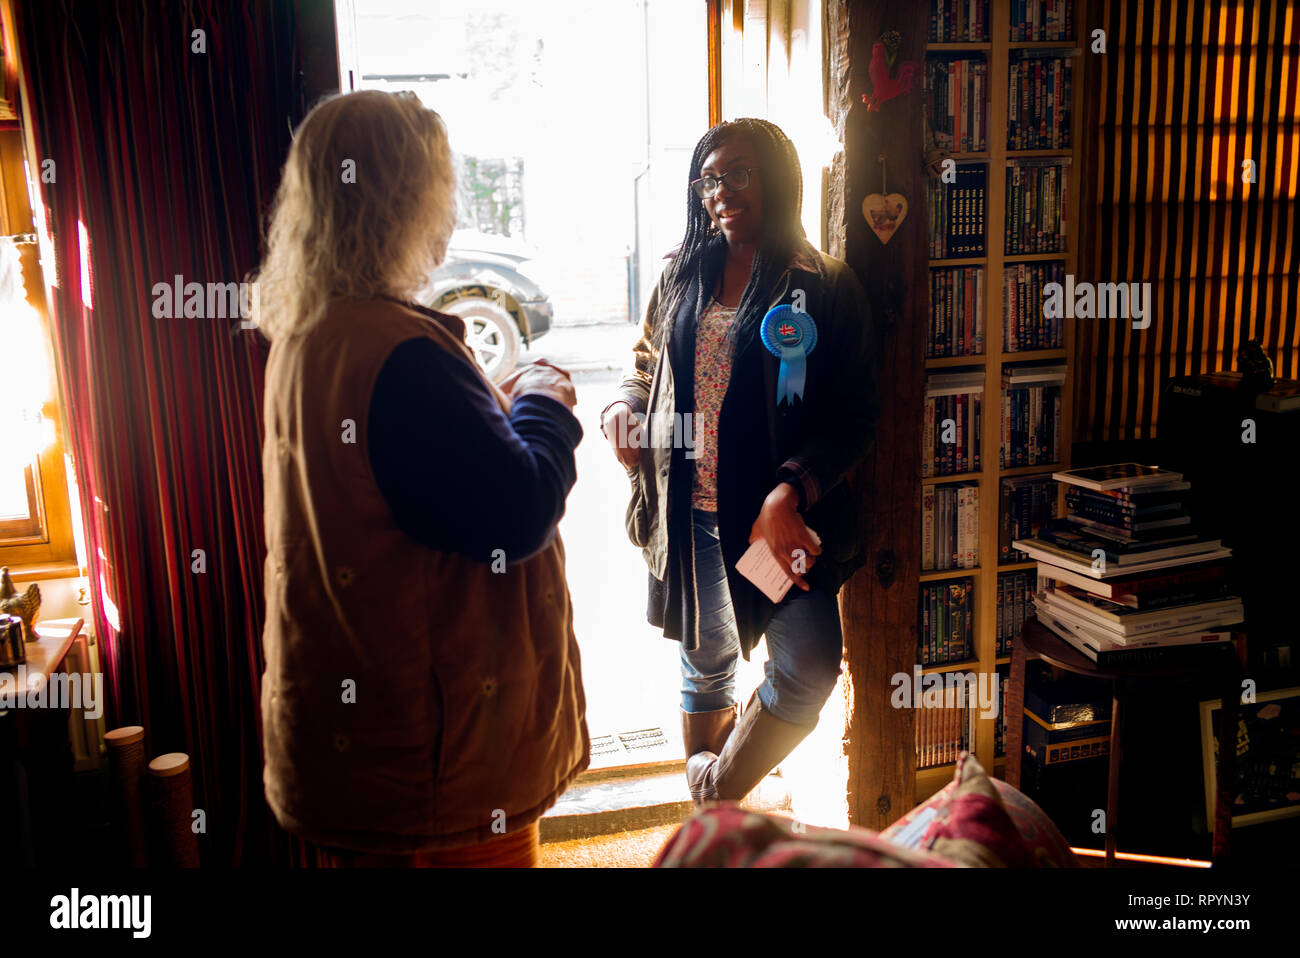 Thaxted, Essex, England. 23rd February 2019. Kemi Badenoch Conservative MP for Saffron Walden Essex UK campaigning for two local council candidates in the Uttlesford District Council ( UDC ) election to be held on 2 May 2019. She is seen here talking to local resident Nicola Bertoya about issues of concern such as speeding motorists in the area.  Olukemi Olufunto Badenoch (née Adegoke; born January 1980)is a British Conservative politician and Member of Parliament for Saffron Walden. Adegoke was born in Wimbledon, London to parents of Nigerian origin. Credit: BRIAN HARRIS/Alamy Live News - Stock Image